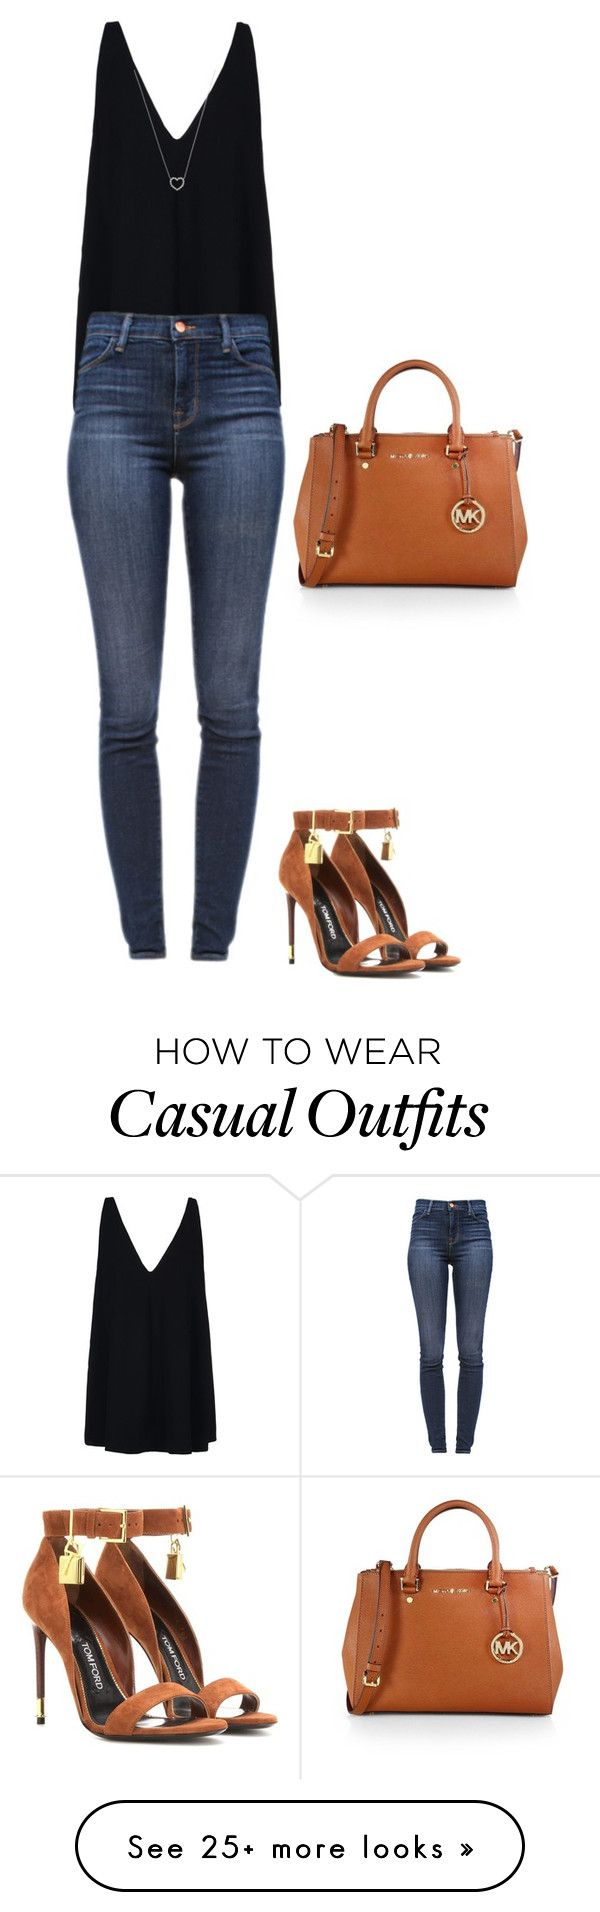 """L.A casual lunch"" by marta-isabella on Polyvore featuring MICHAEL Michael Kors, STELLA McCARTNEY, J Brand, Tom Ford and Tiffany & Co."